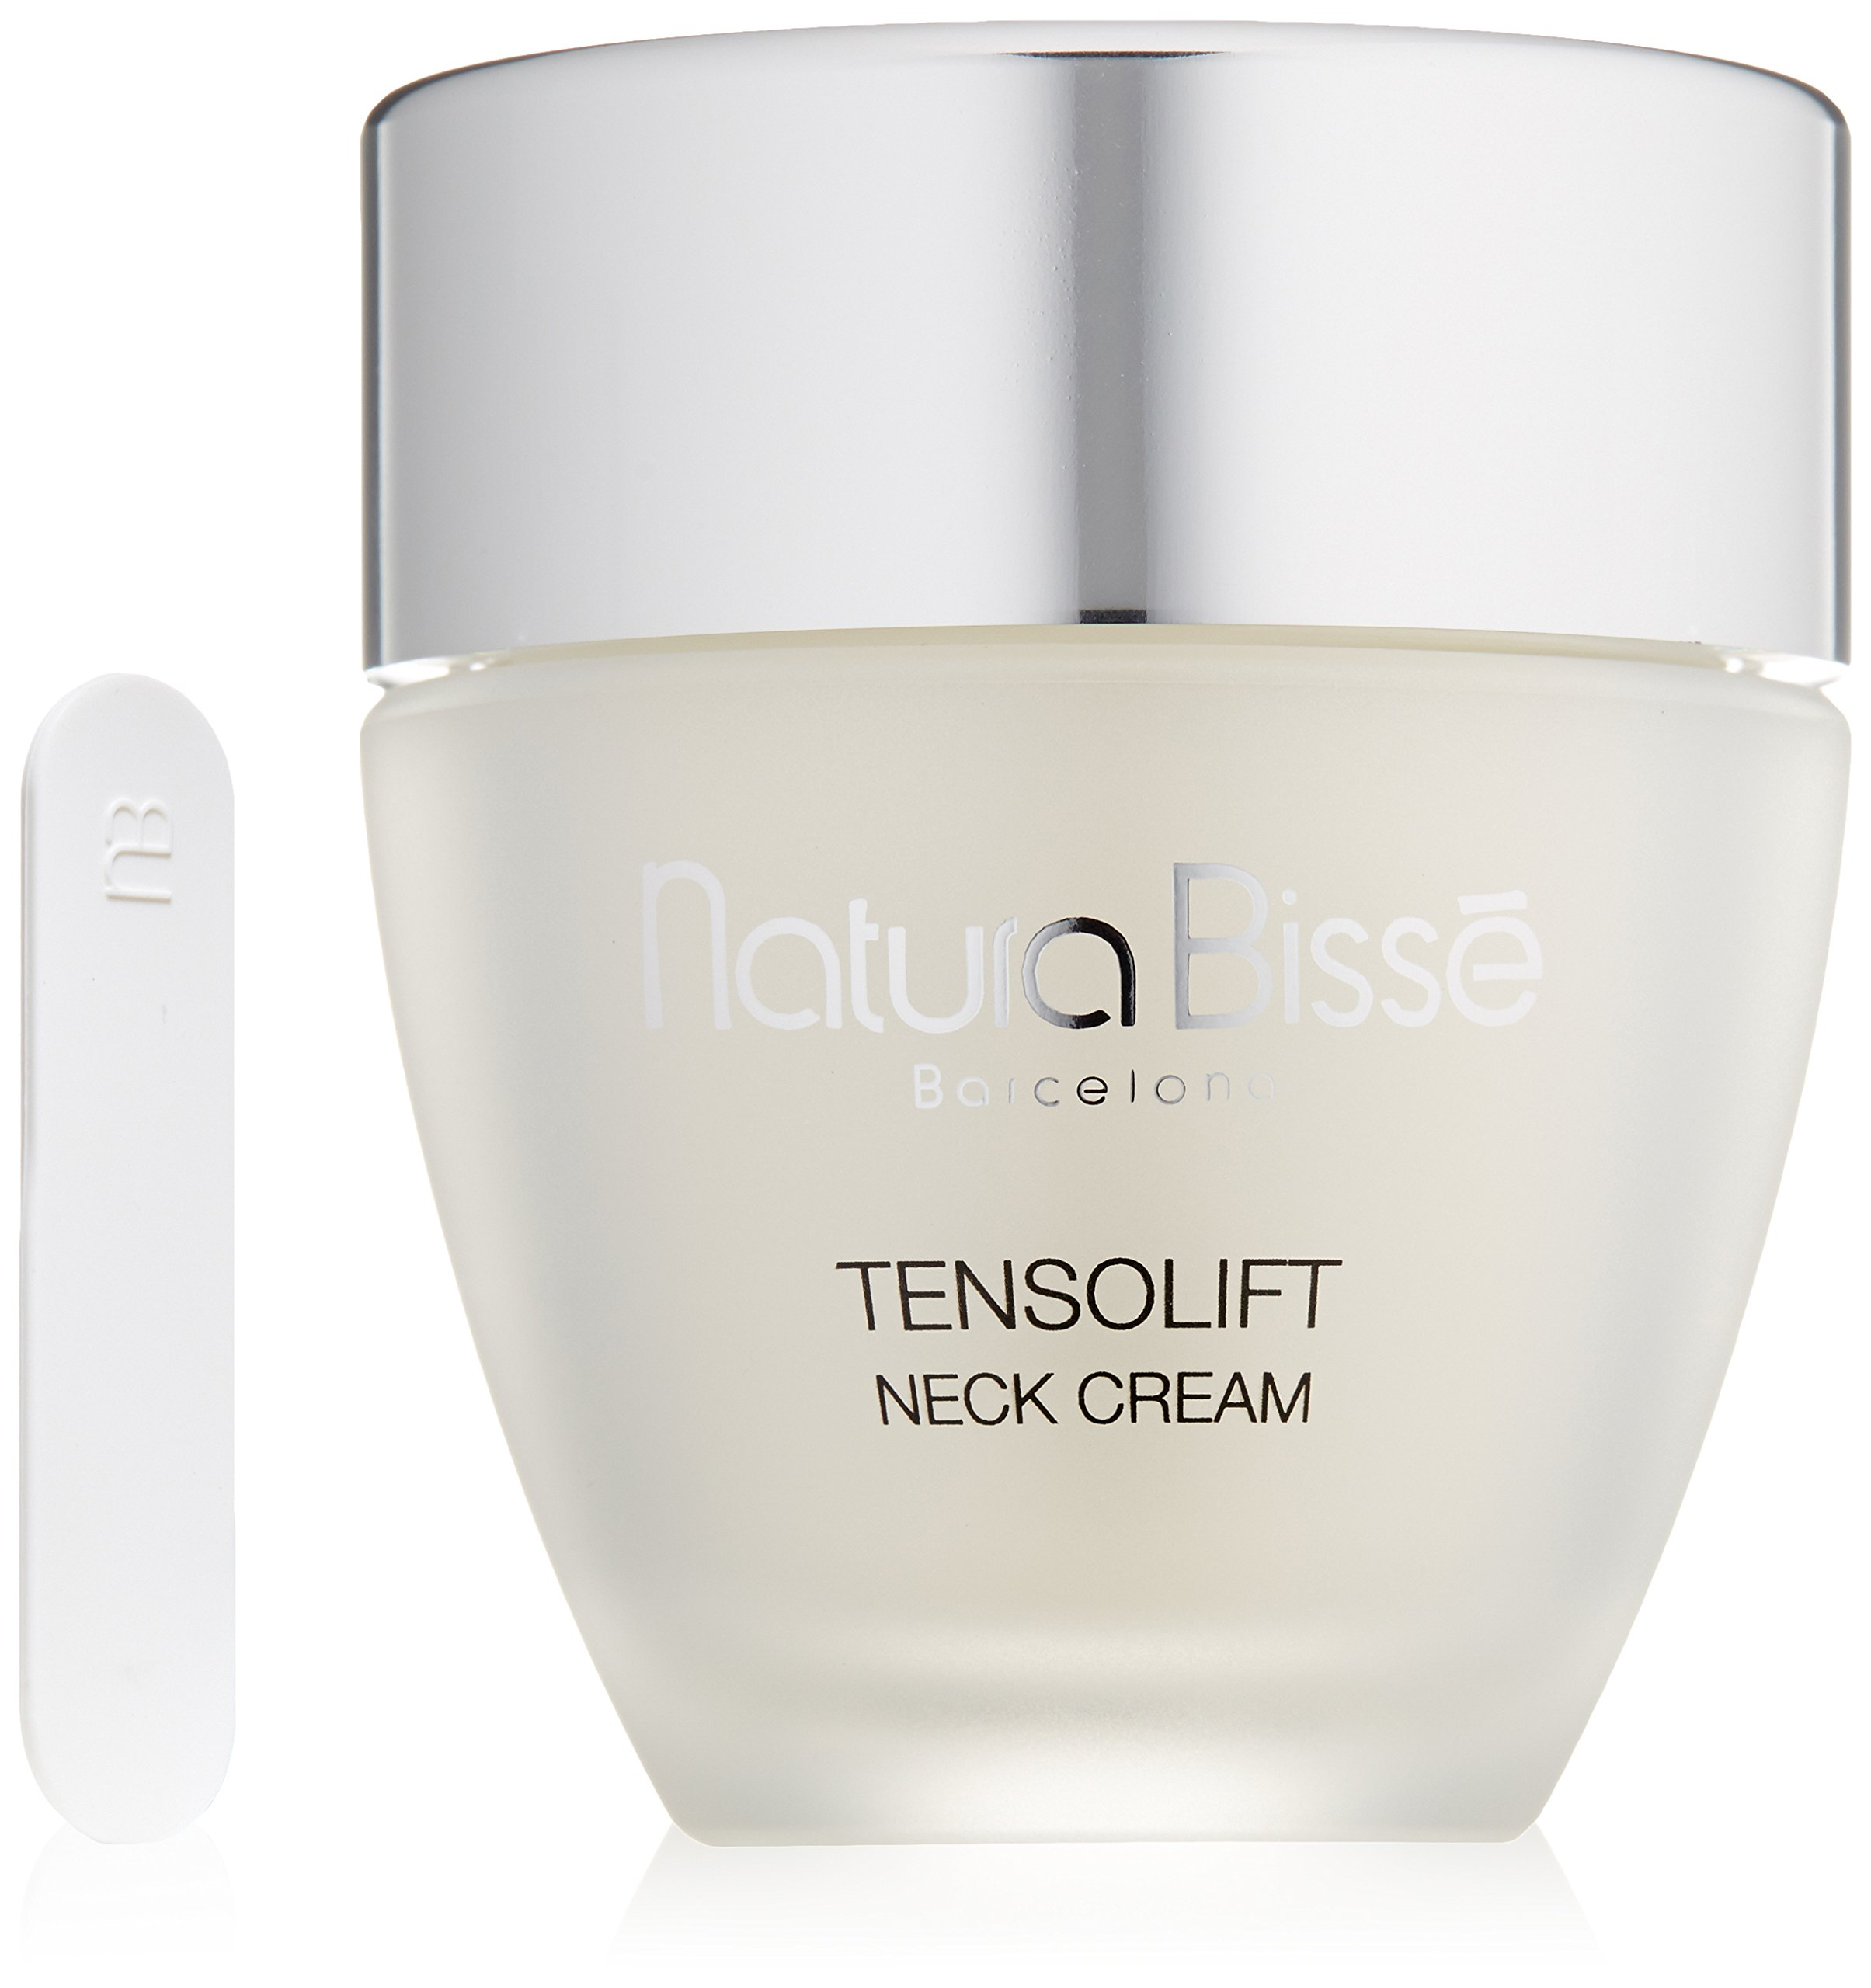 Natura Bisse Tensolift Neck Cream, 1.7 oz